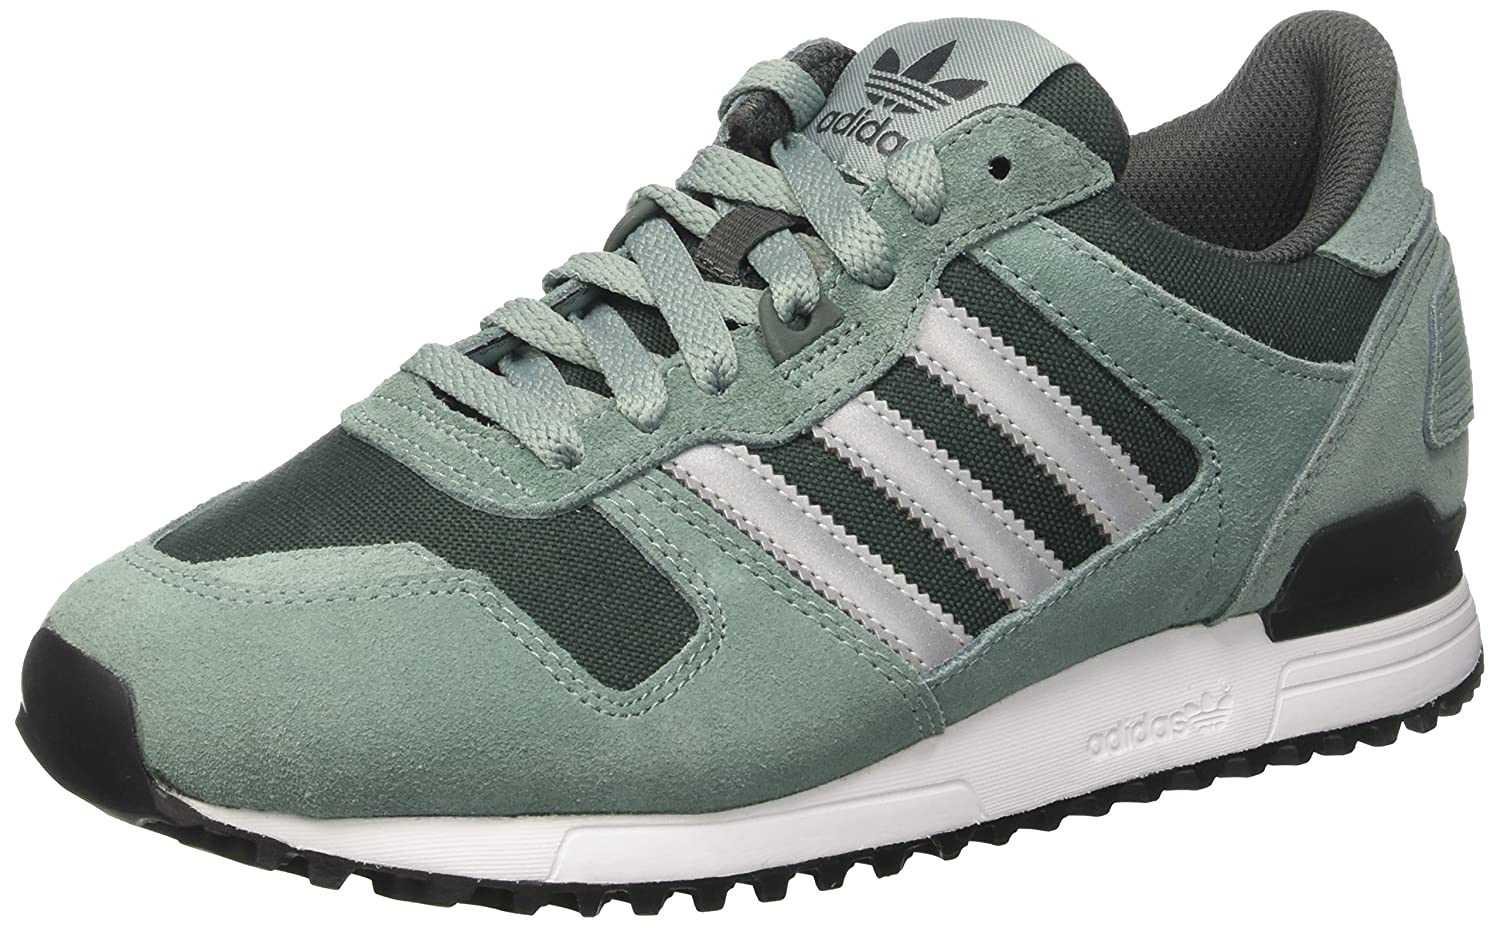 96937ba2ec97 ... best price adidas mens zx 700 low top sneakers green vapour steel  metallic silver sld utility